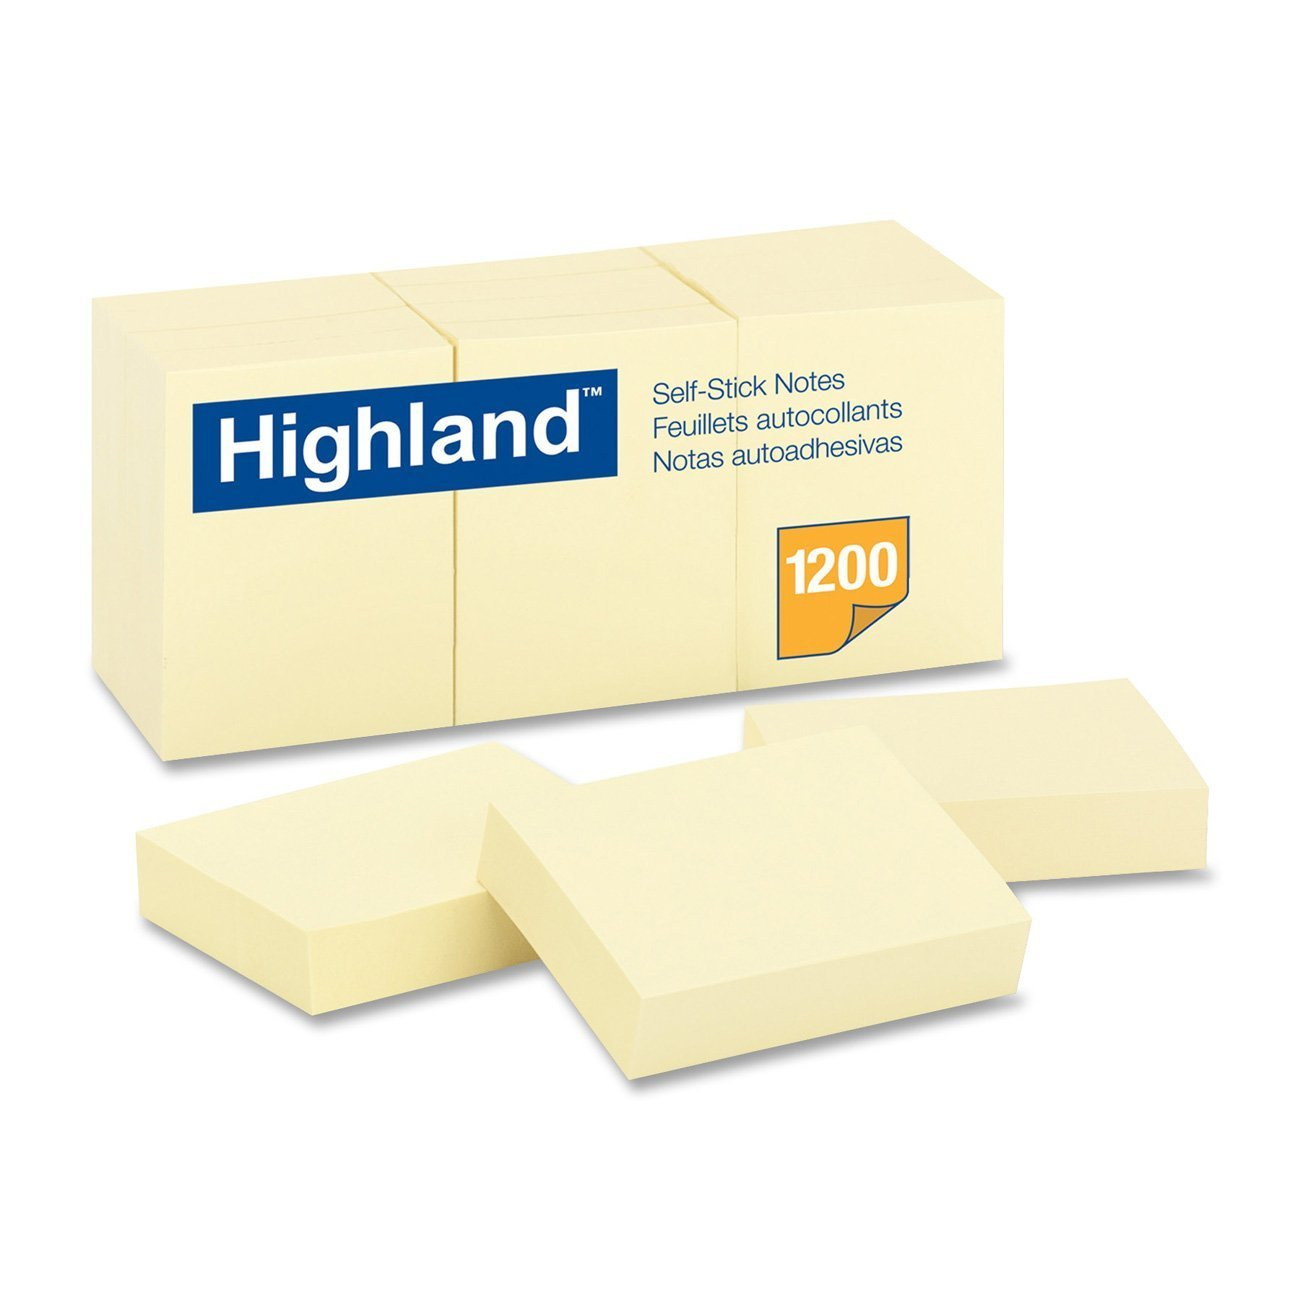 Highland 6539 Self-Stick Notes, 1-3/8-Inch by 1-7/8-Inch, Yellow, 100 Sheets per Pad 36 pack of 12 pads